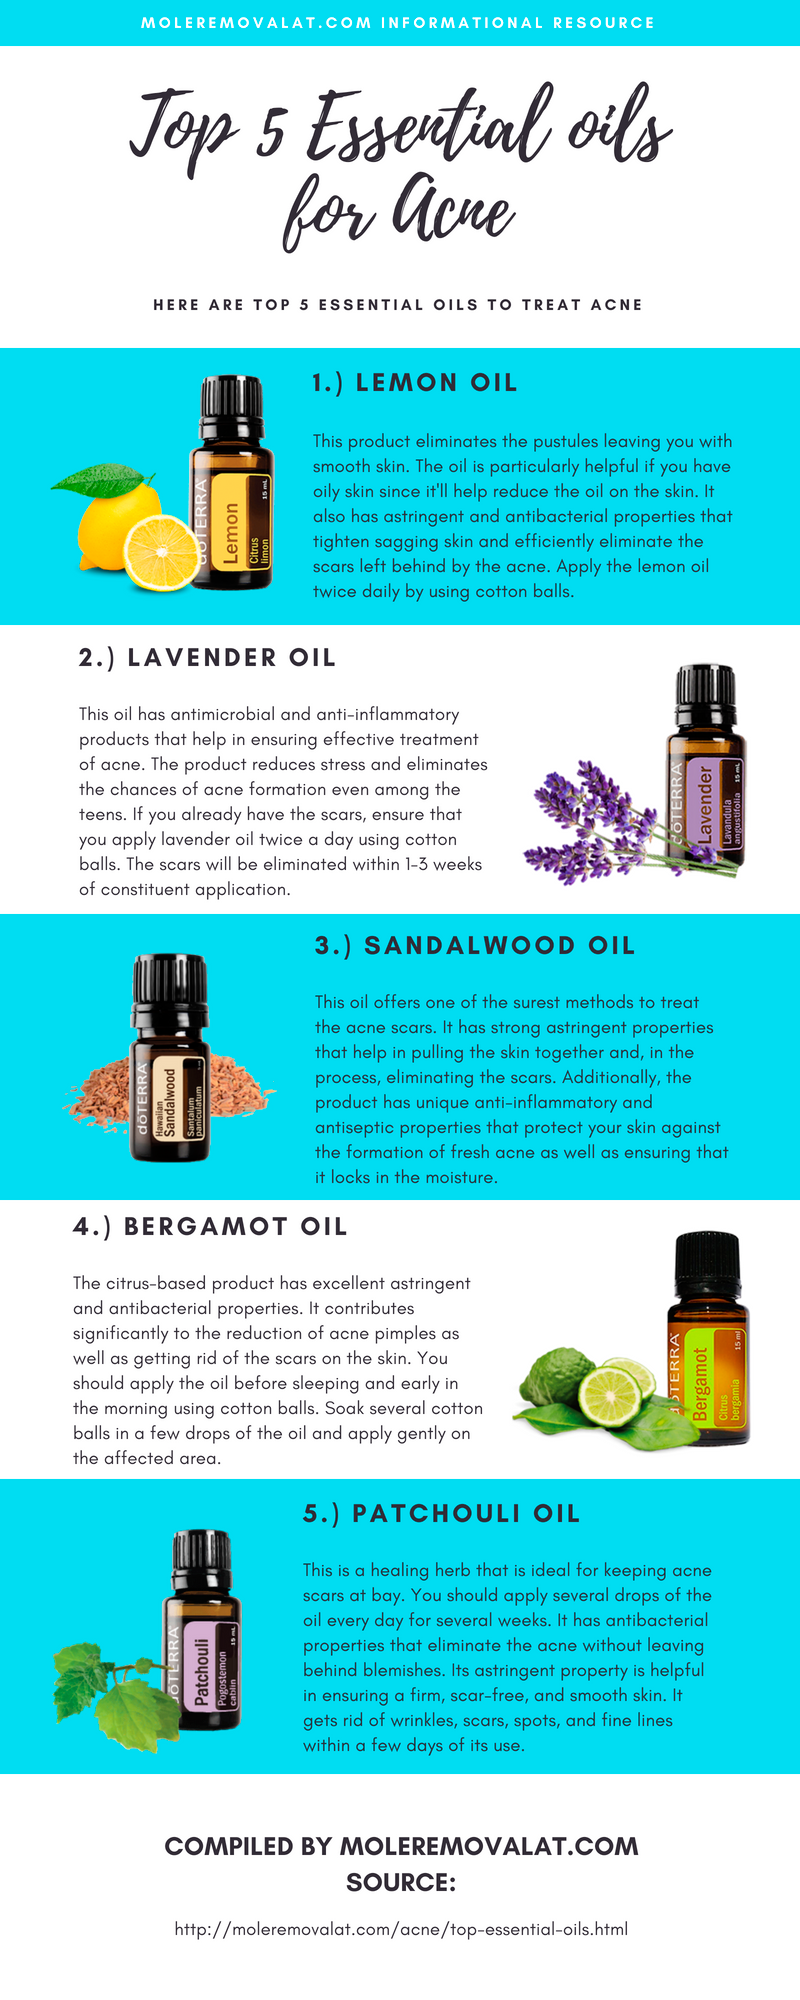 Infographic: Top 5 Essential Oils for Acne Treatment